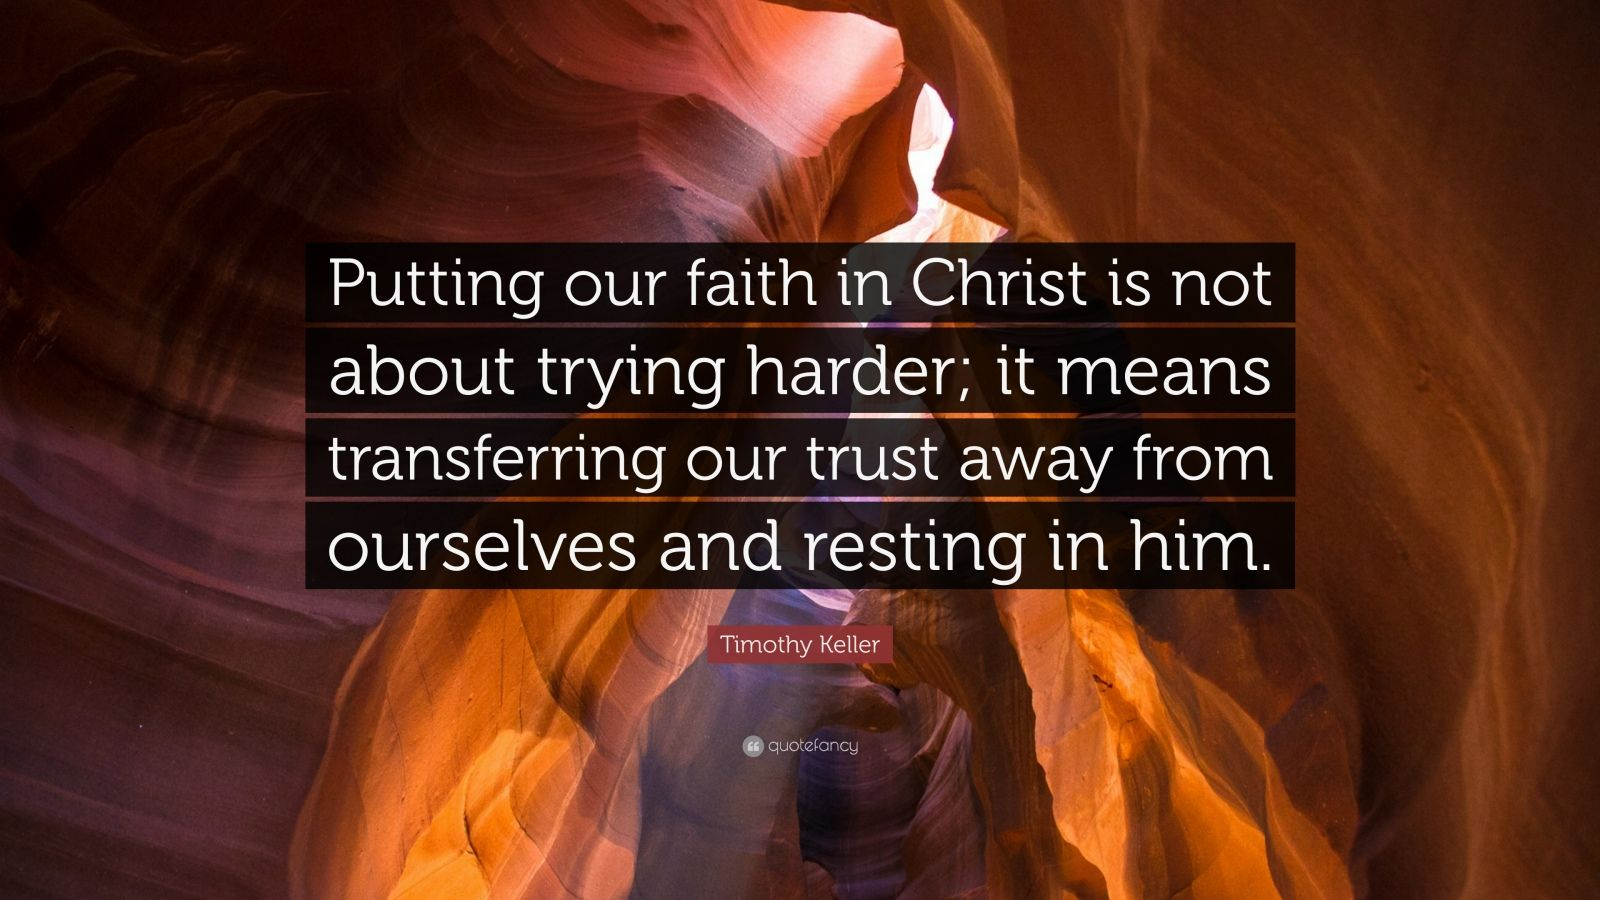 """Timothy Keller Quote: """"Putting our faith in Christ is not about trying harder; it means transferring our trust away from ourselves and resting in him."""""""